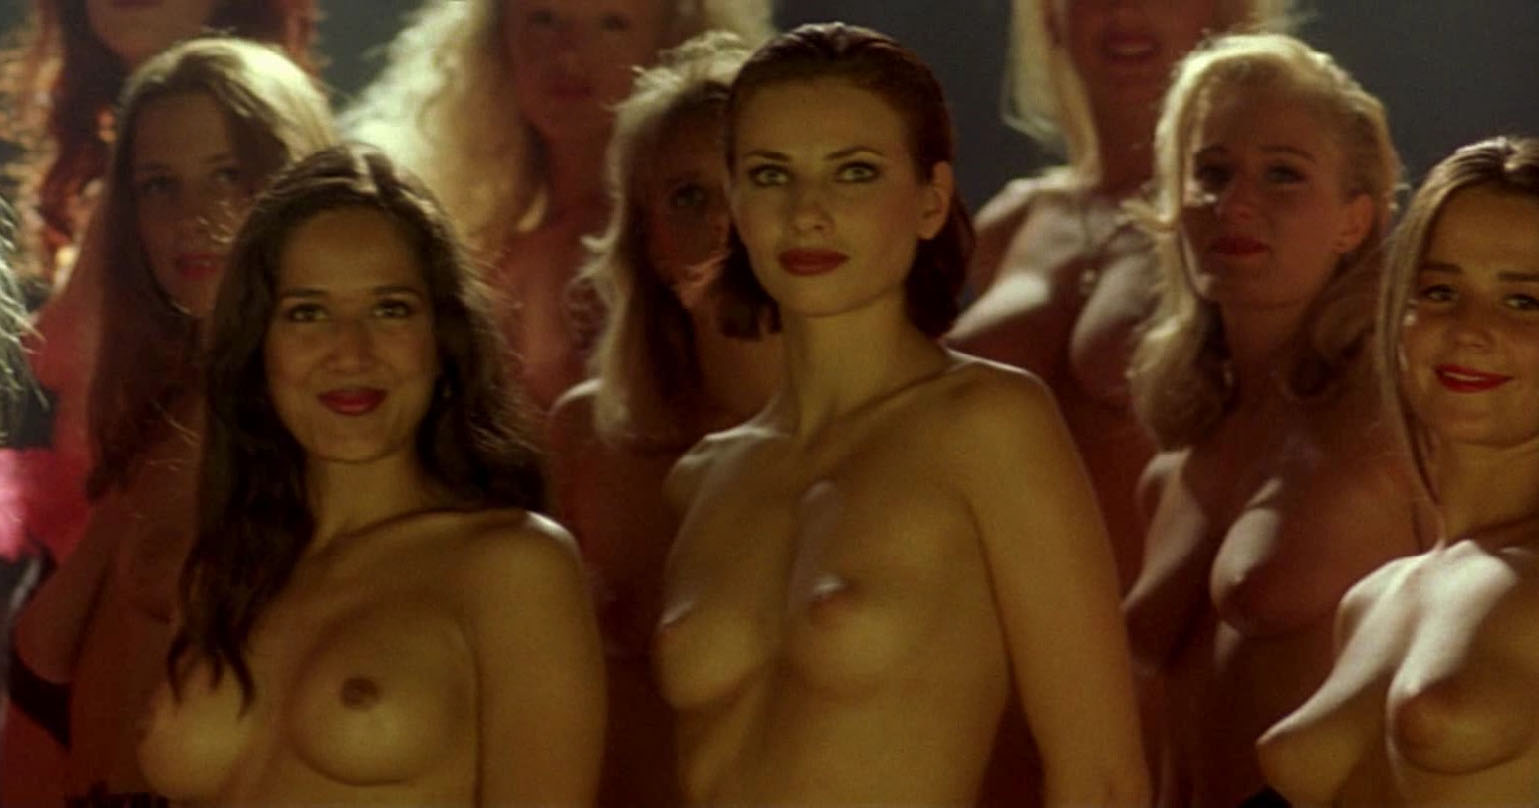 Janine Kunze nude. Photo - 1